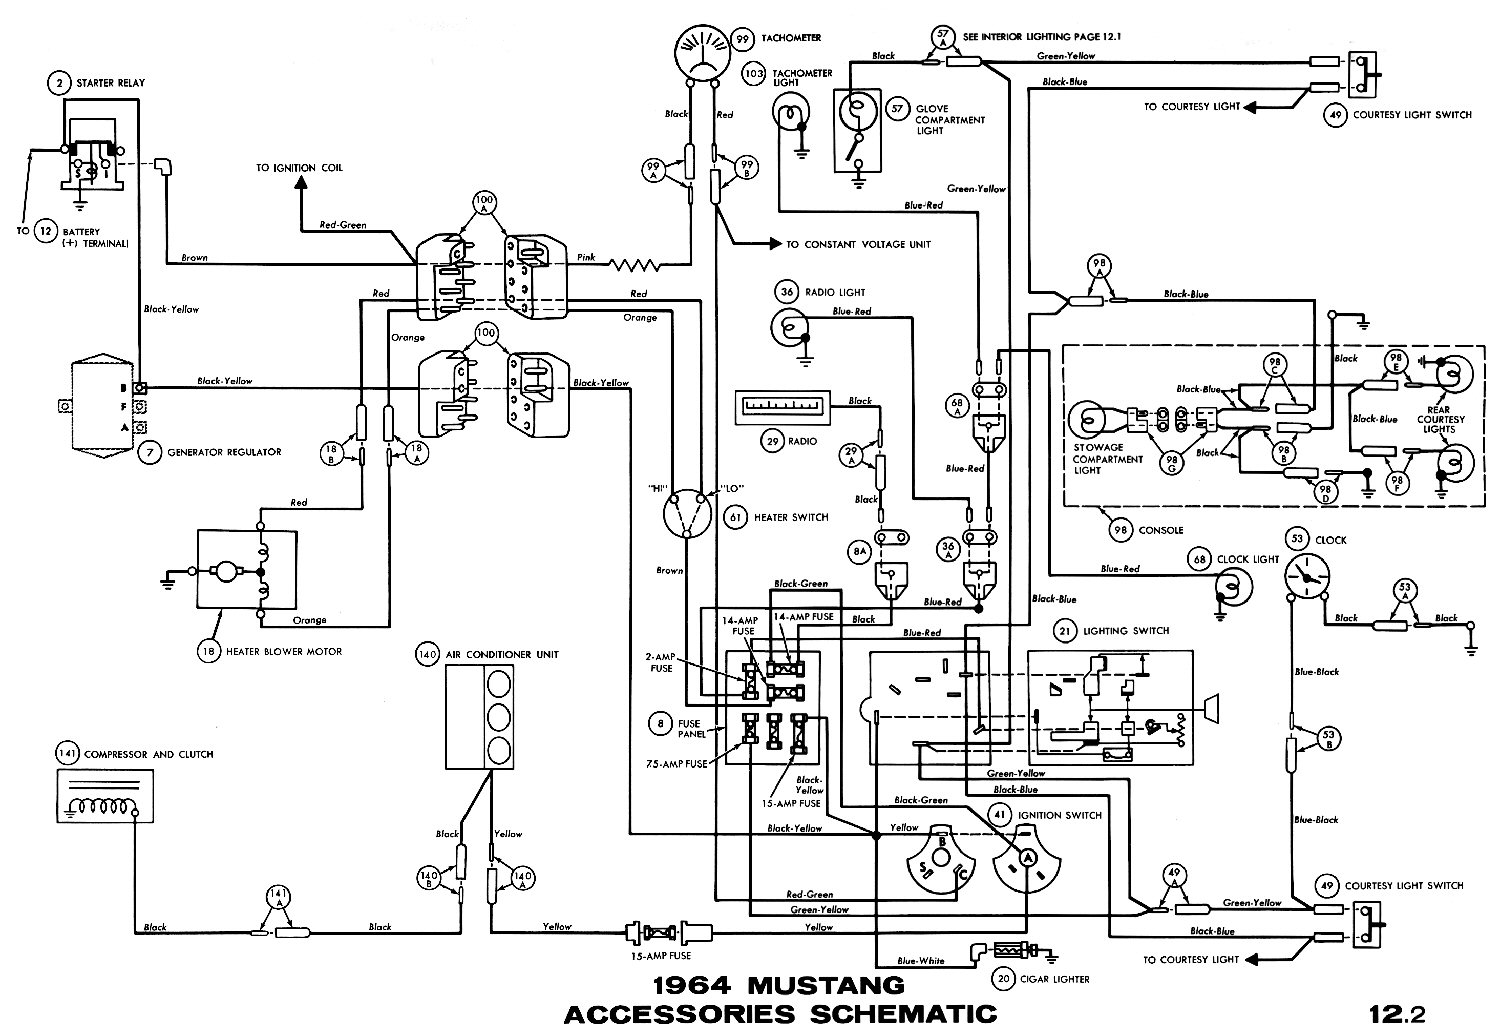 66 Mustang Turn Signal Wiring Diagram Wire Data Schema 1970 Ford F100 240 Detailed Schematics Rh Yogajourneymd Com 1966